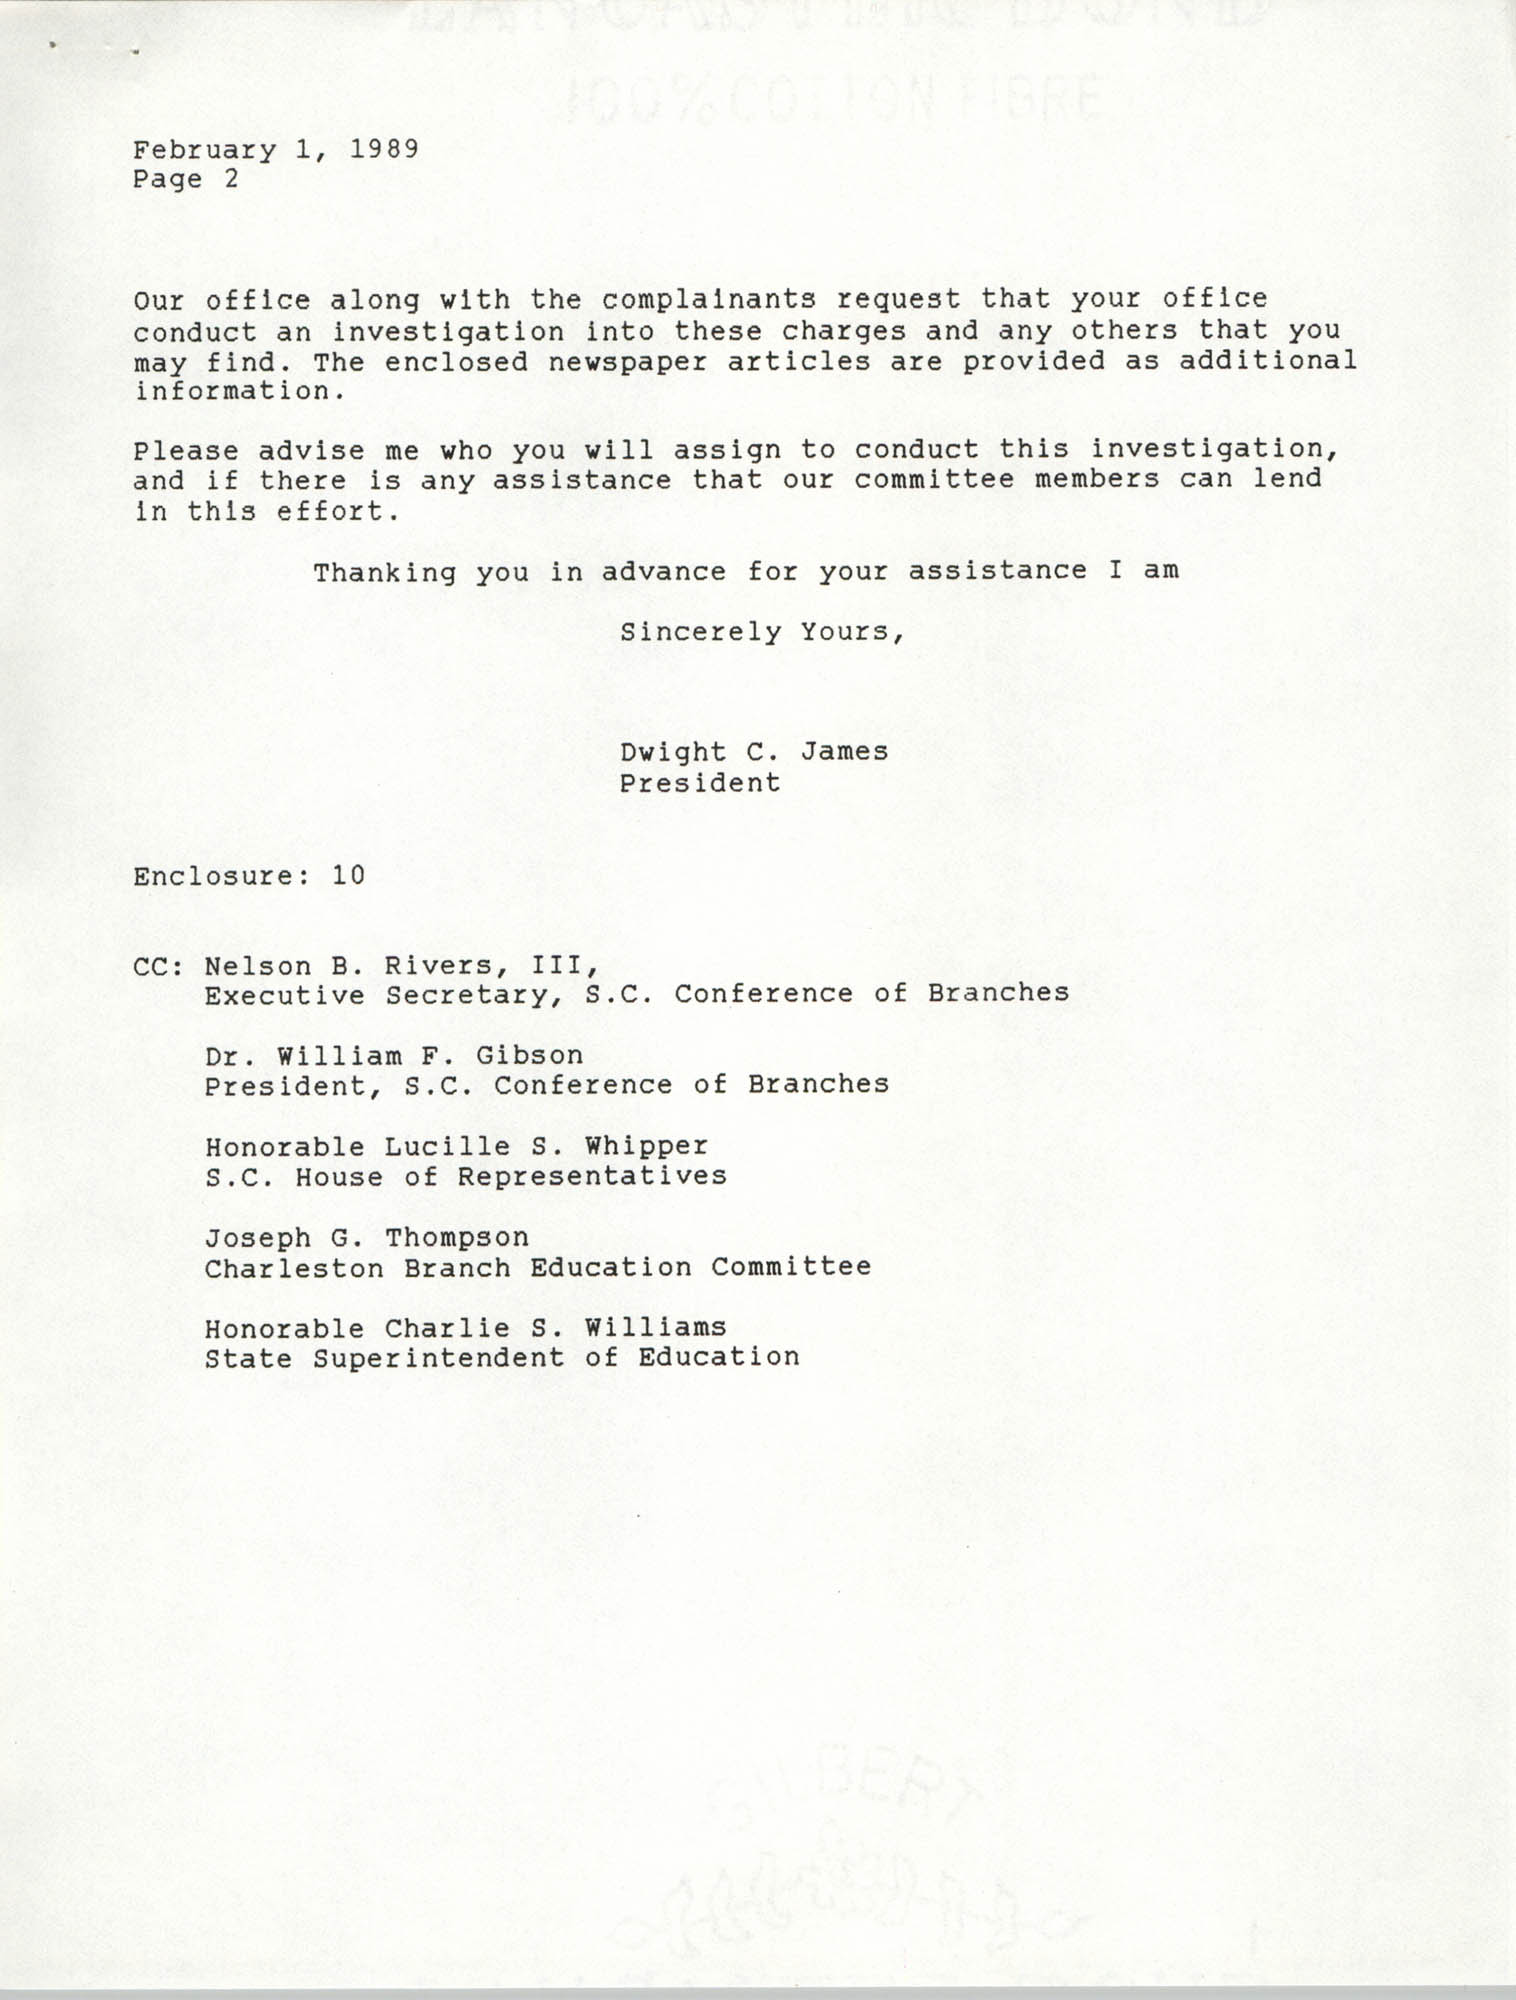 Letter from Dwight C. James, February 1, 1989, Page 2